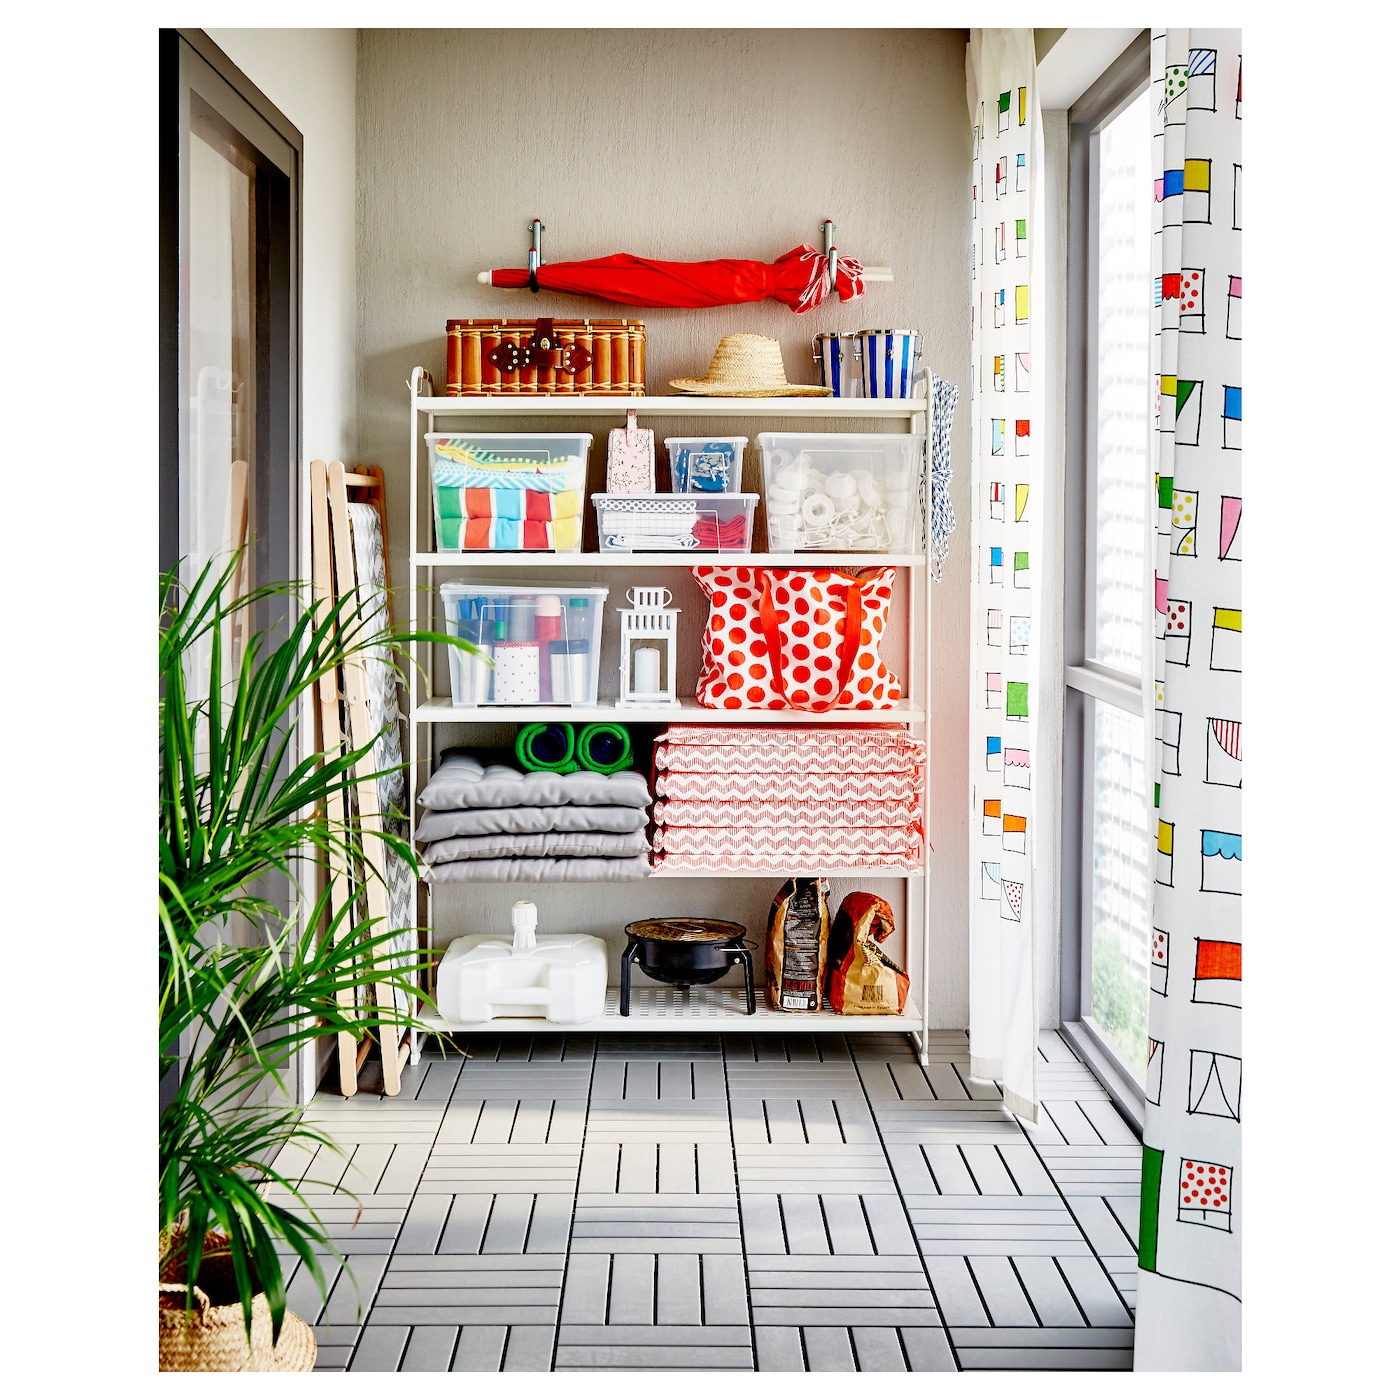 https://www.ikea.com/be/nl/images/products/mulig-stellingkast-wit__0514121_ph139849_s5.jpg